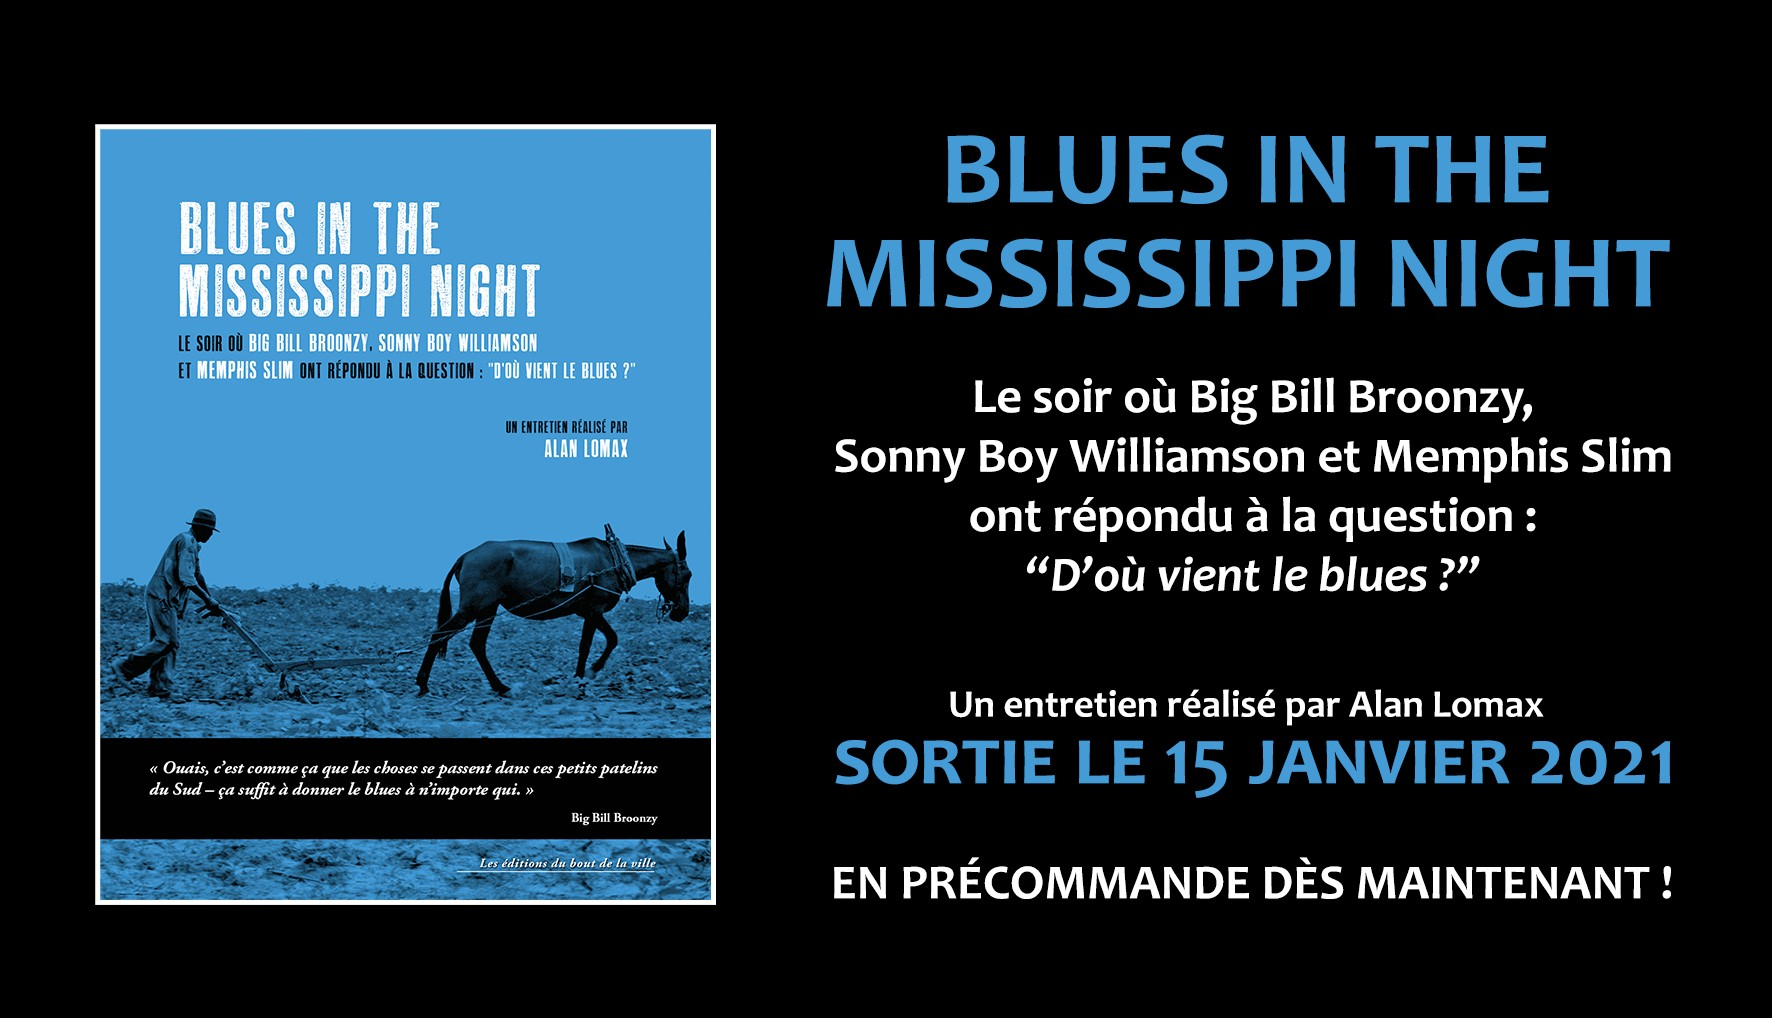 """Blues in the Mississippi night"", un entretien réalisé par Alan Lomax"